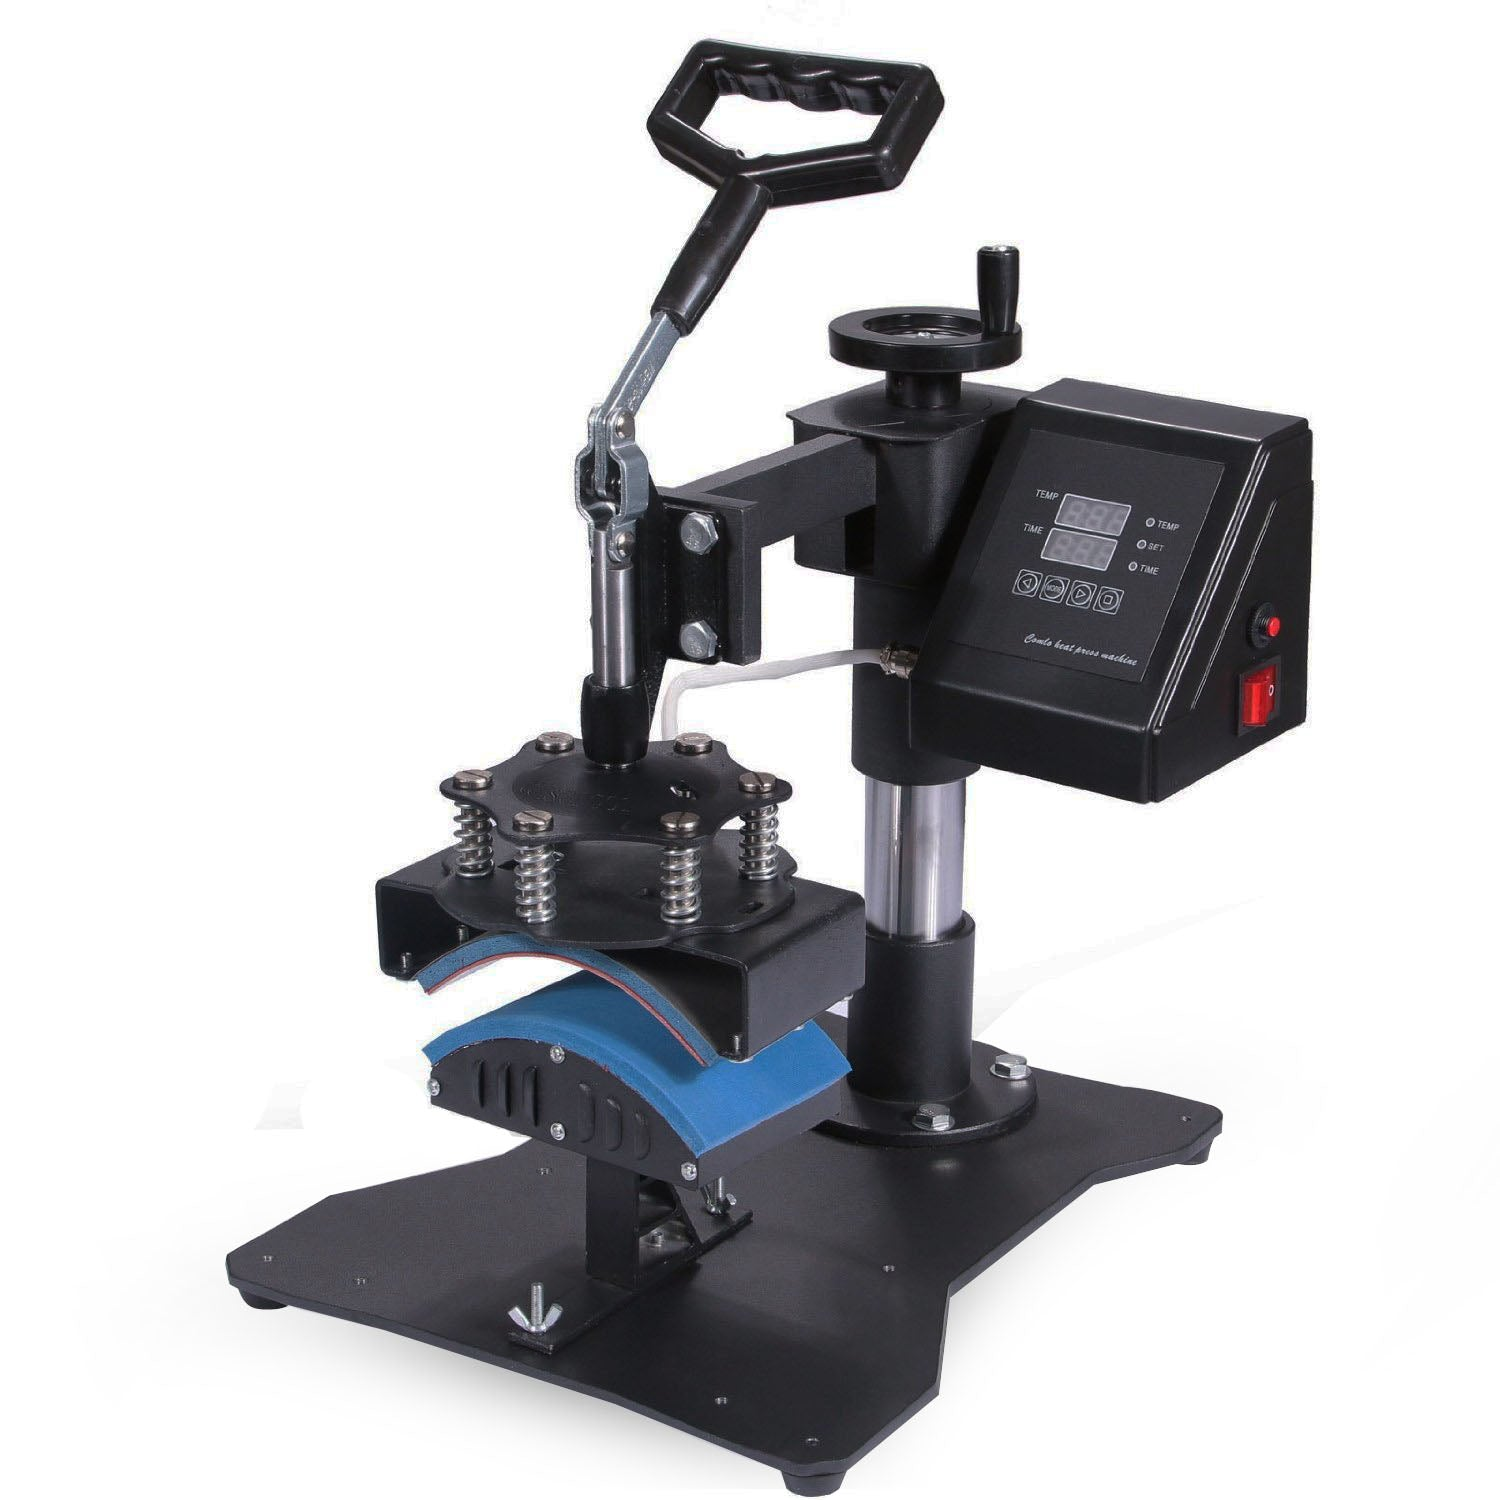 8-in-1 Swing-away Print-Transfer Machine (for T shirt, Mug, Cap,  Phone Cases, Plate, Bags & More)